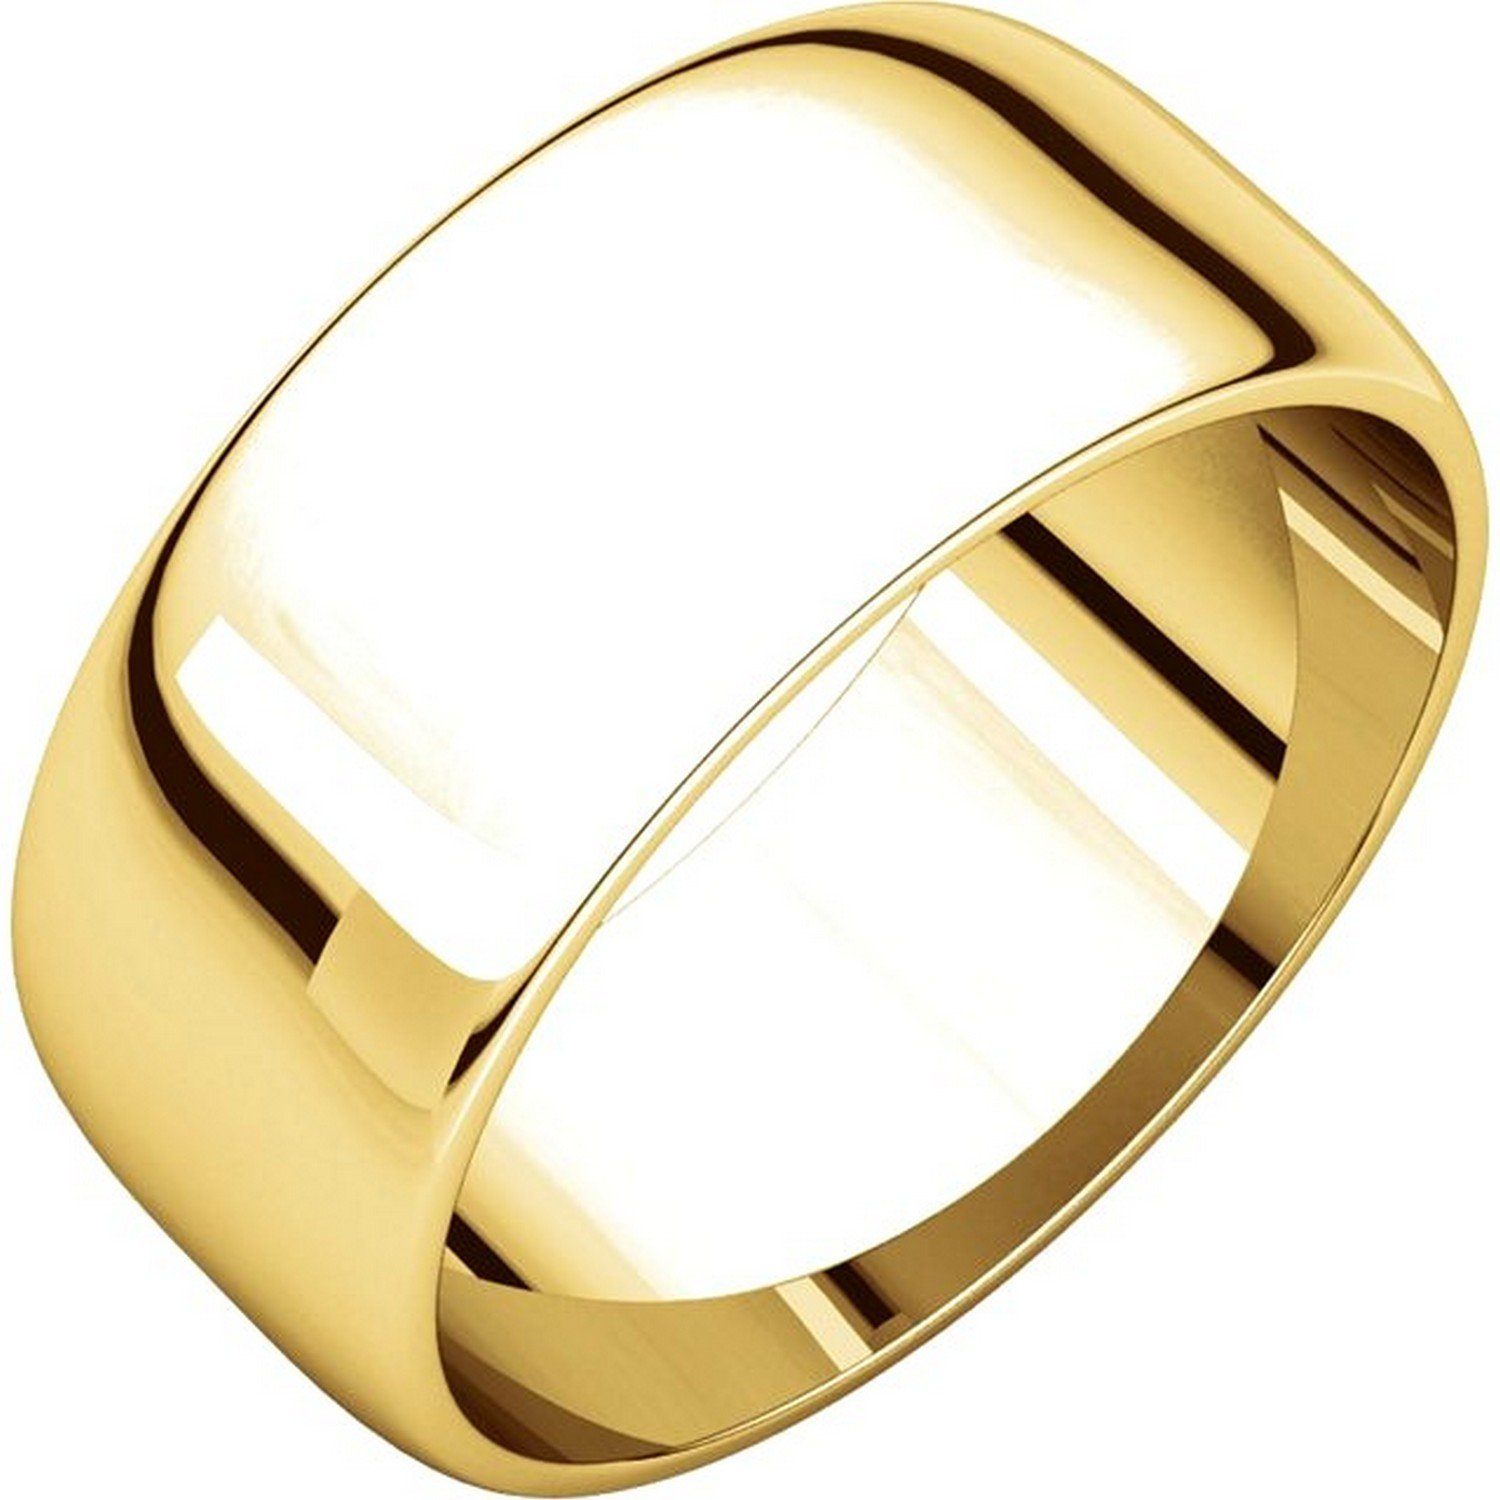 Men's and Women's 14k Yellow Gold, 8mm Wide, Plain Wedding Band - Size 8